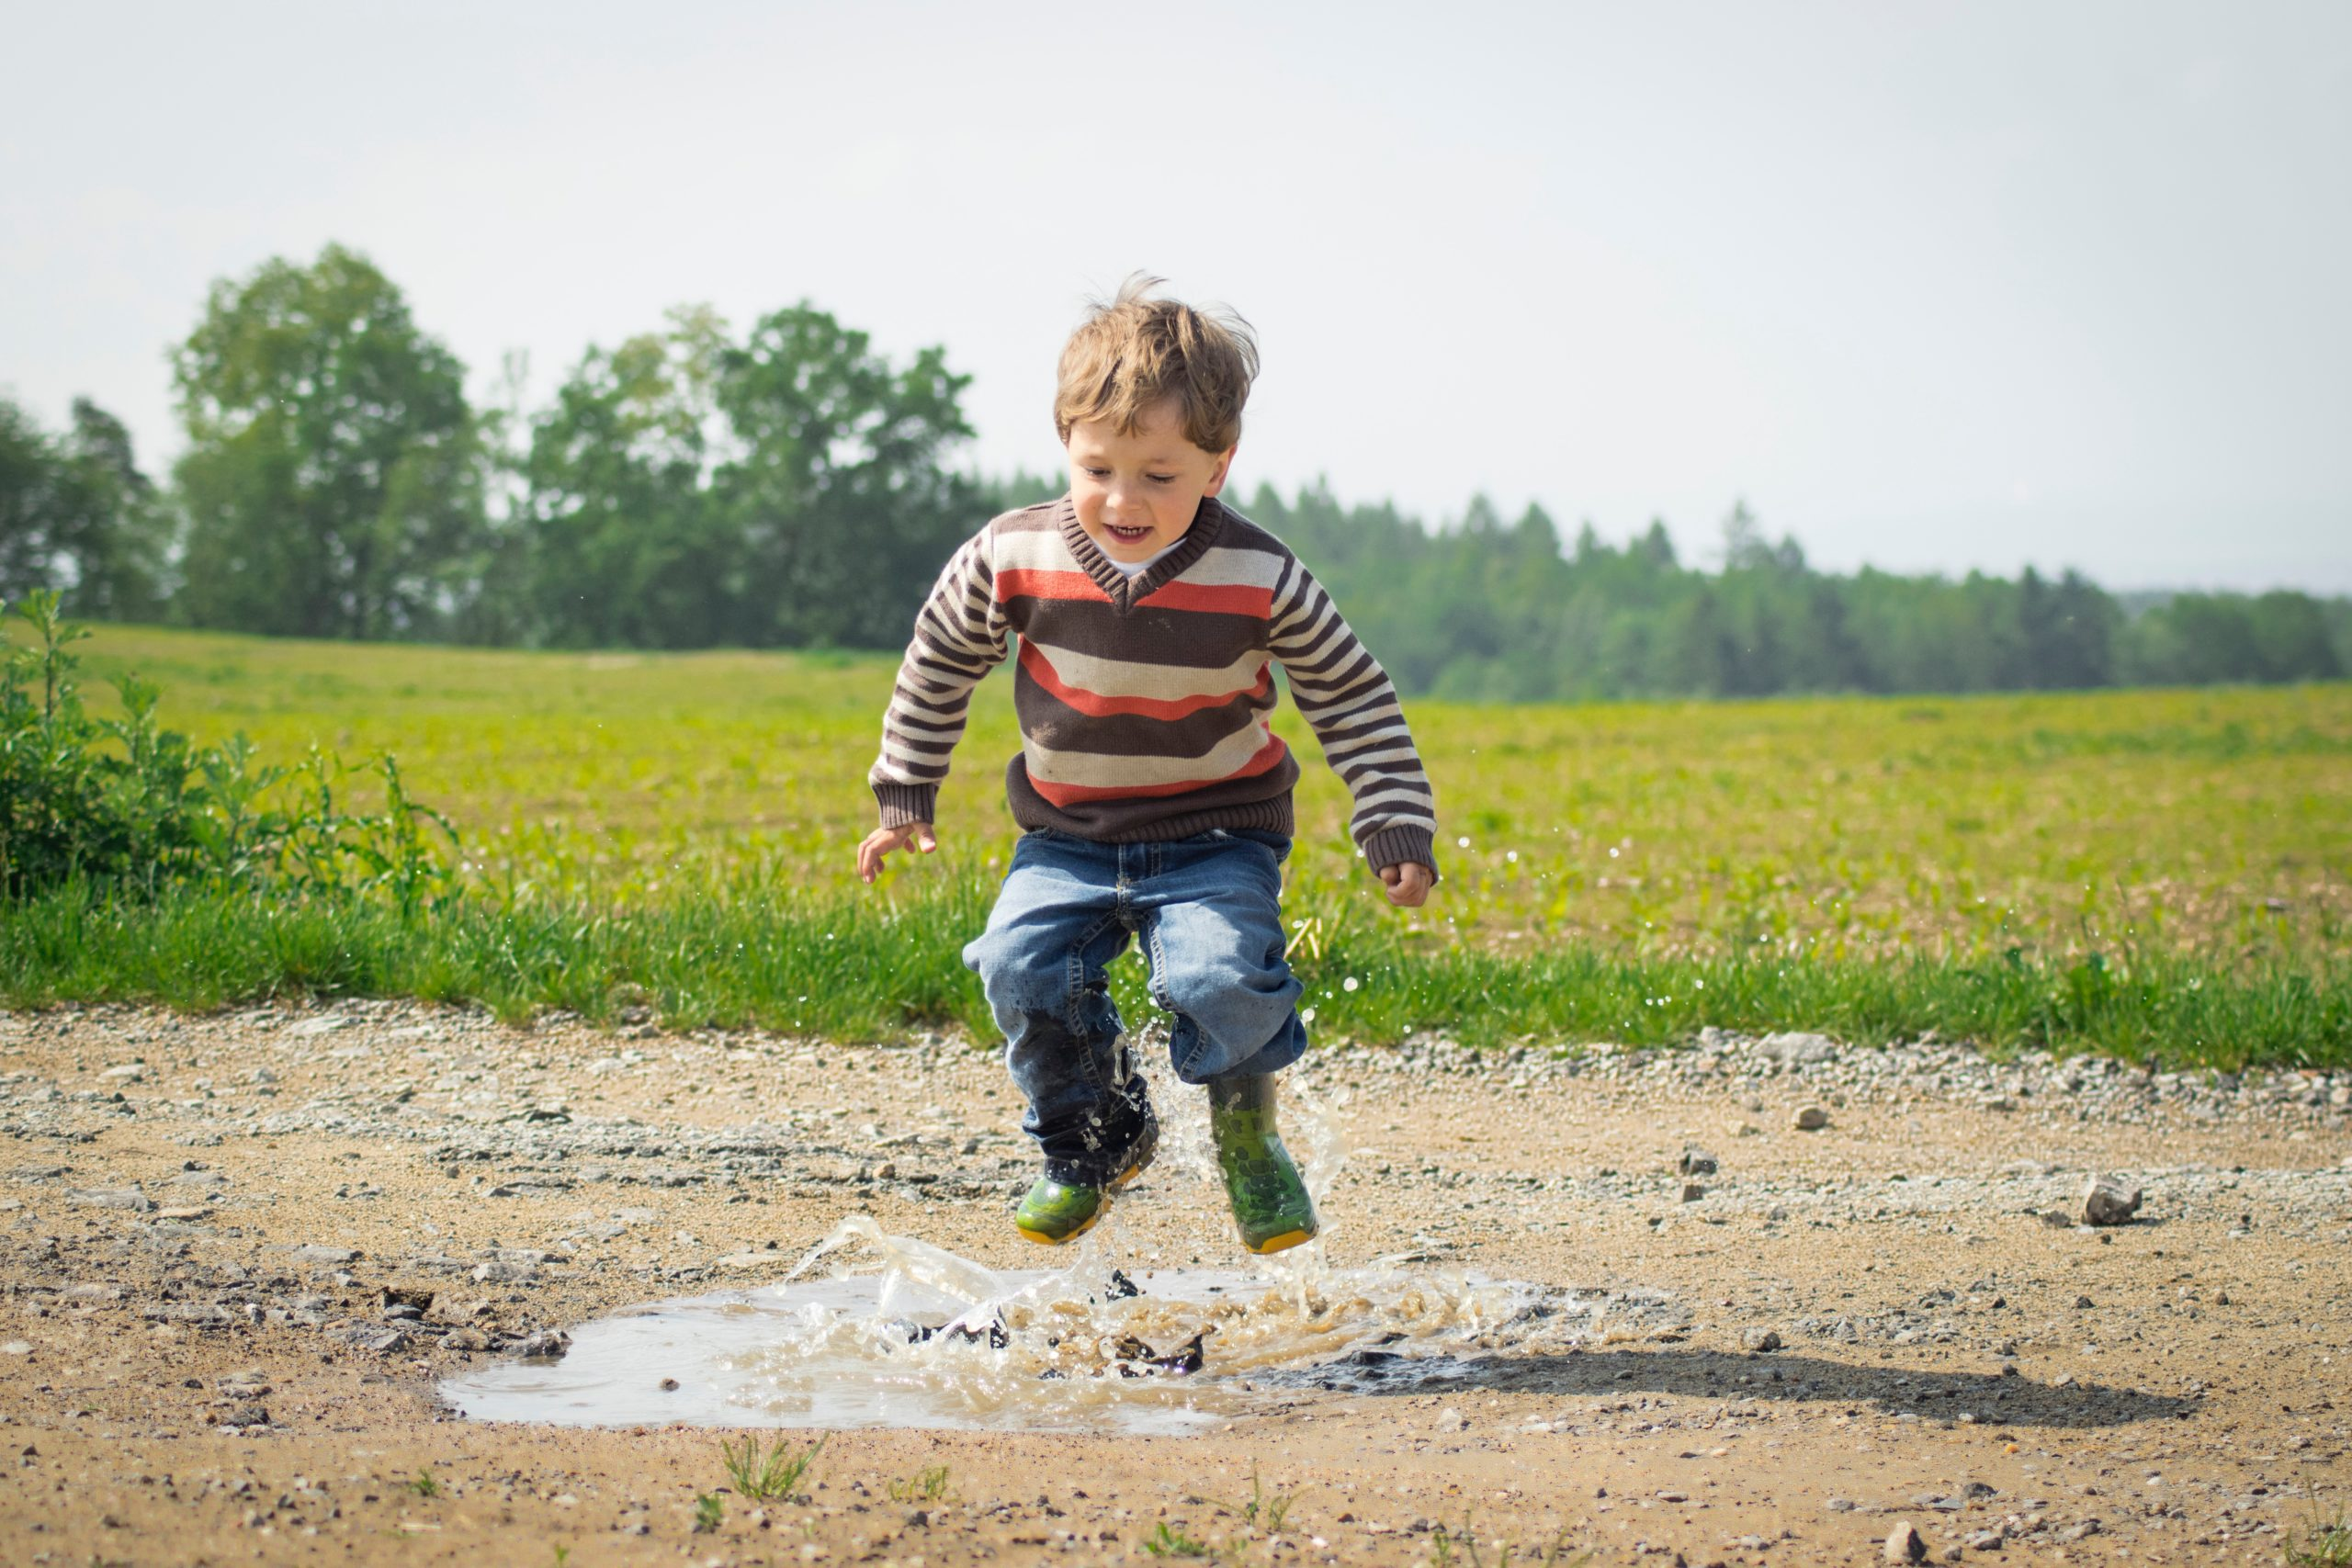 autism diagnosis: a child playing in a puddle in the middle of a green field